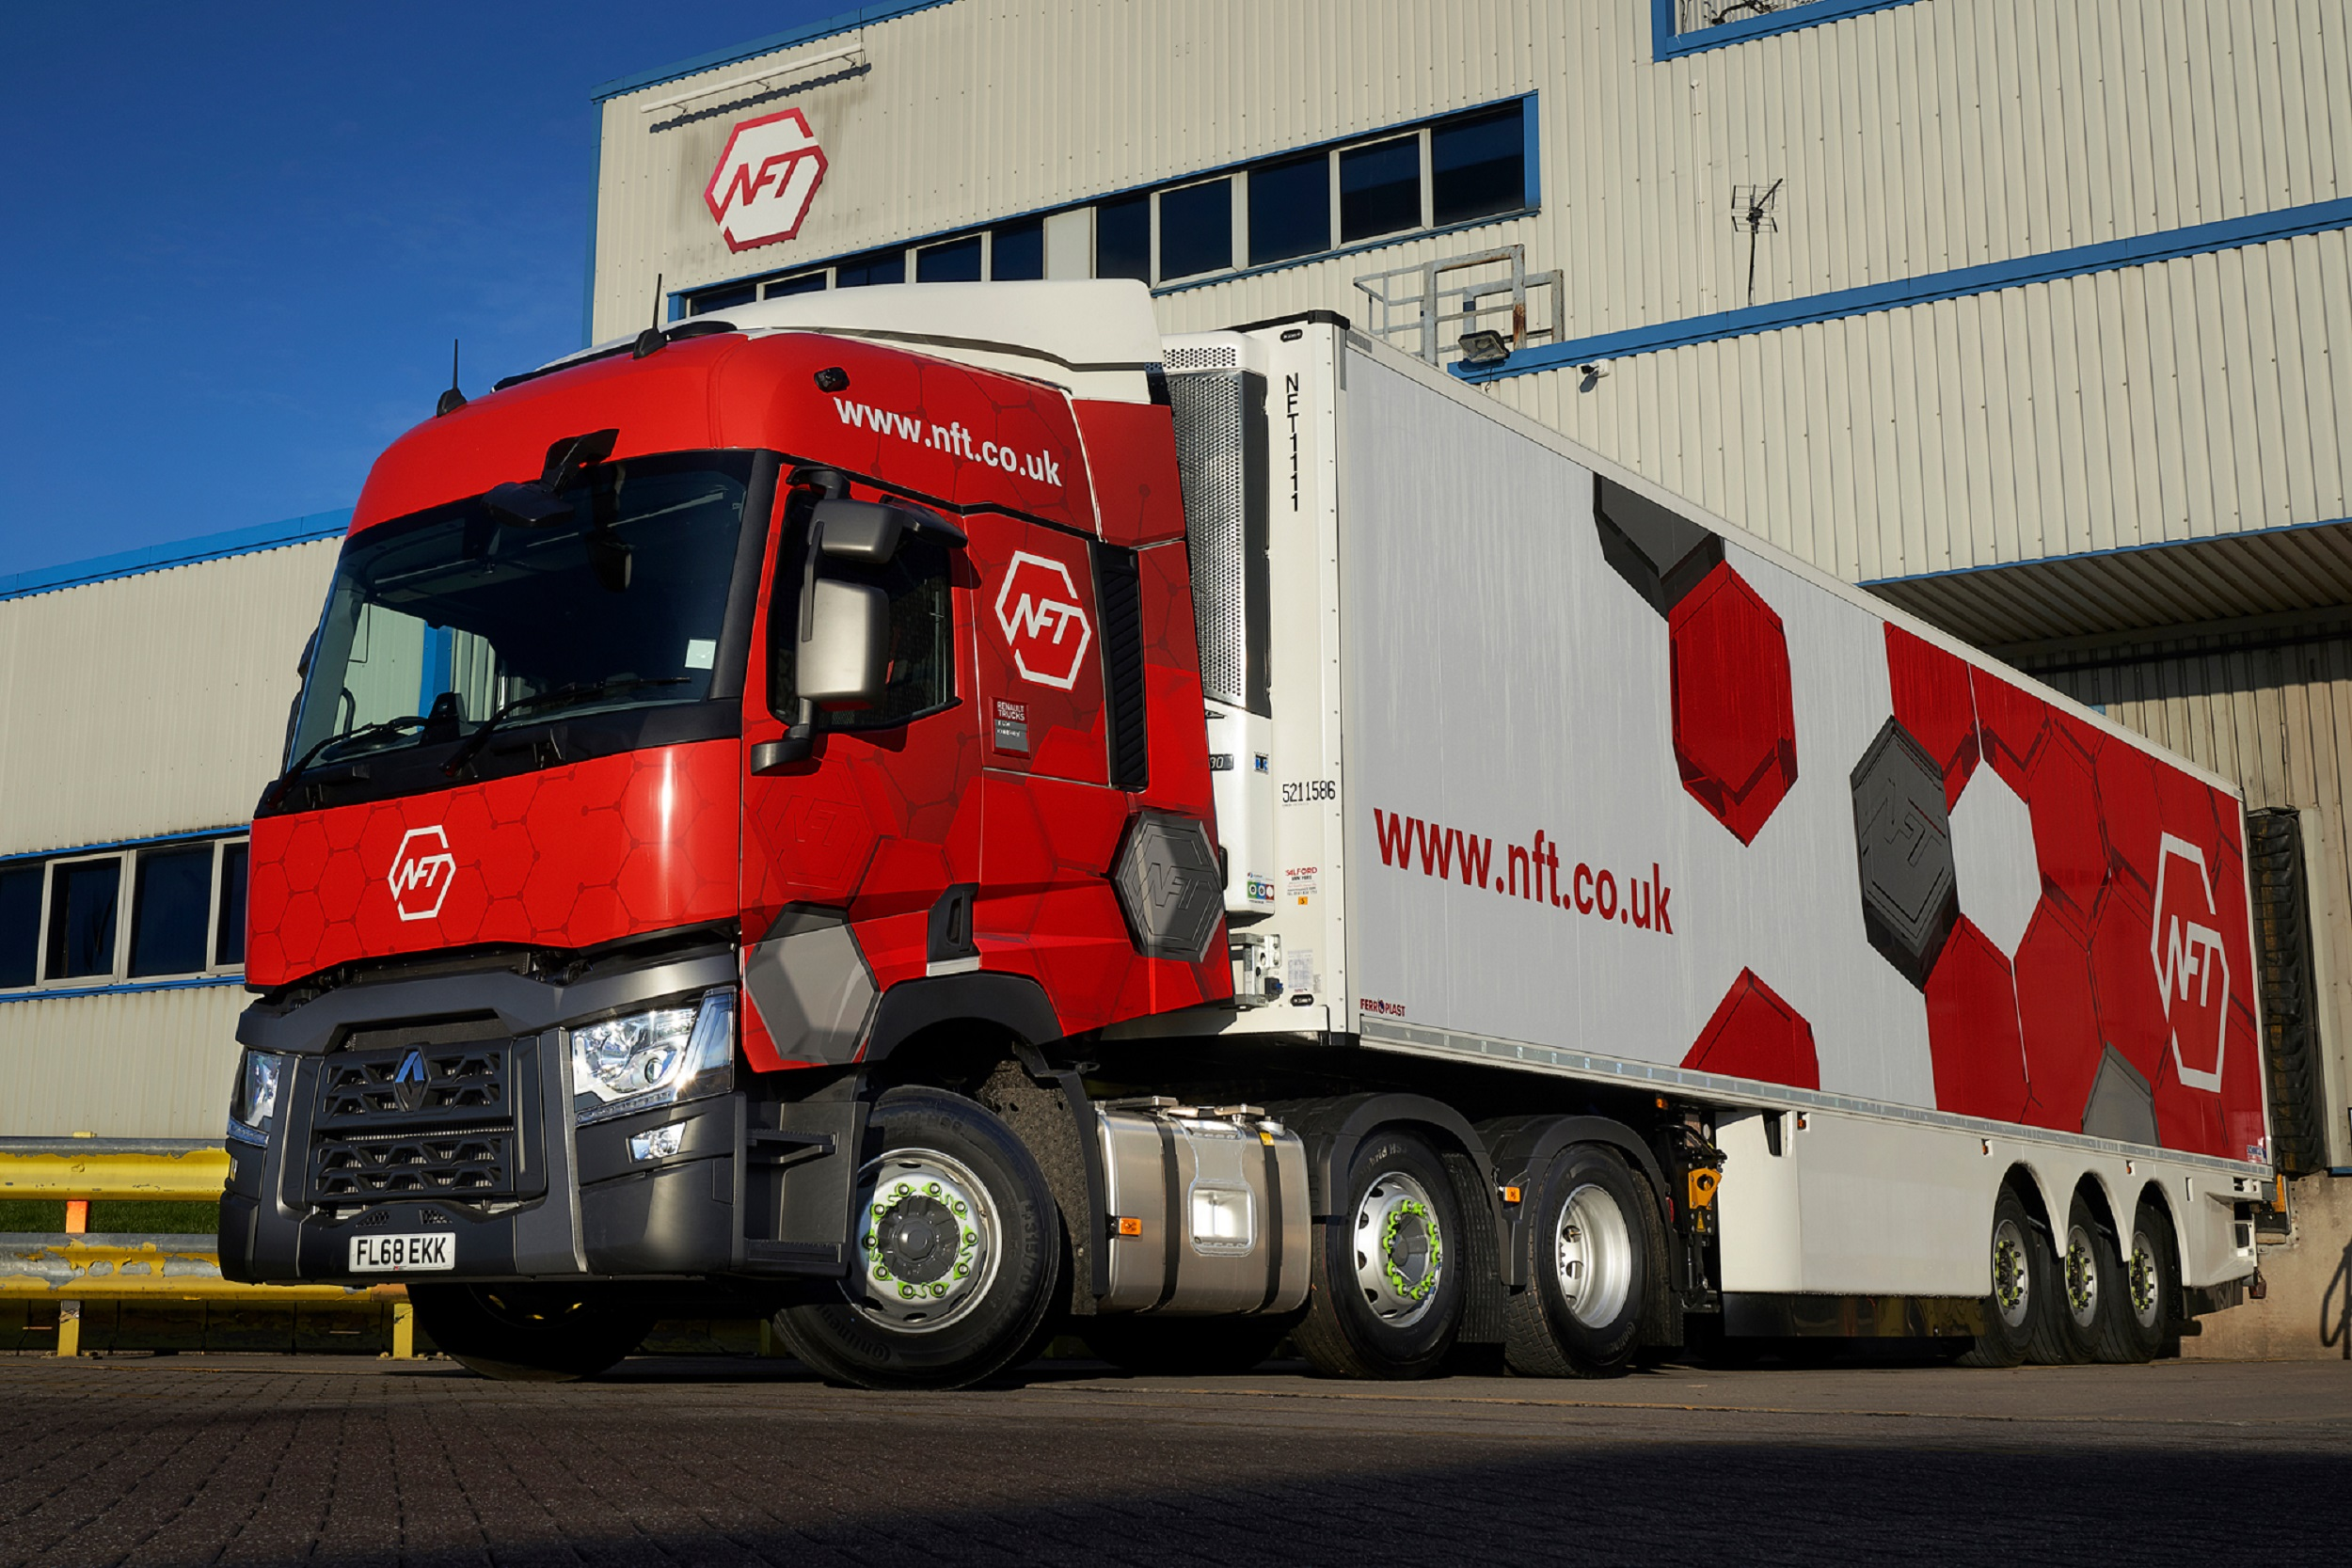 82 truck investment for NFT